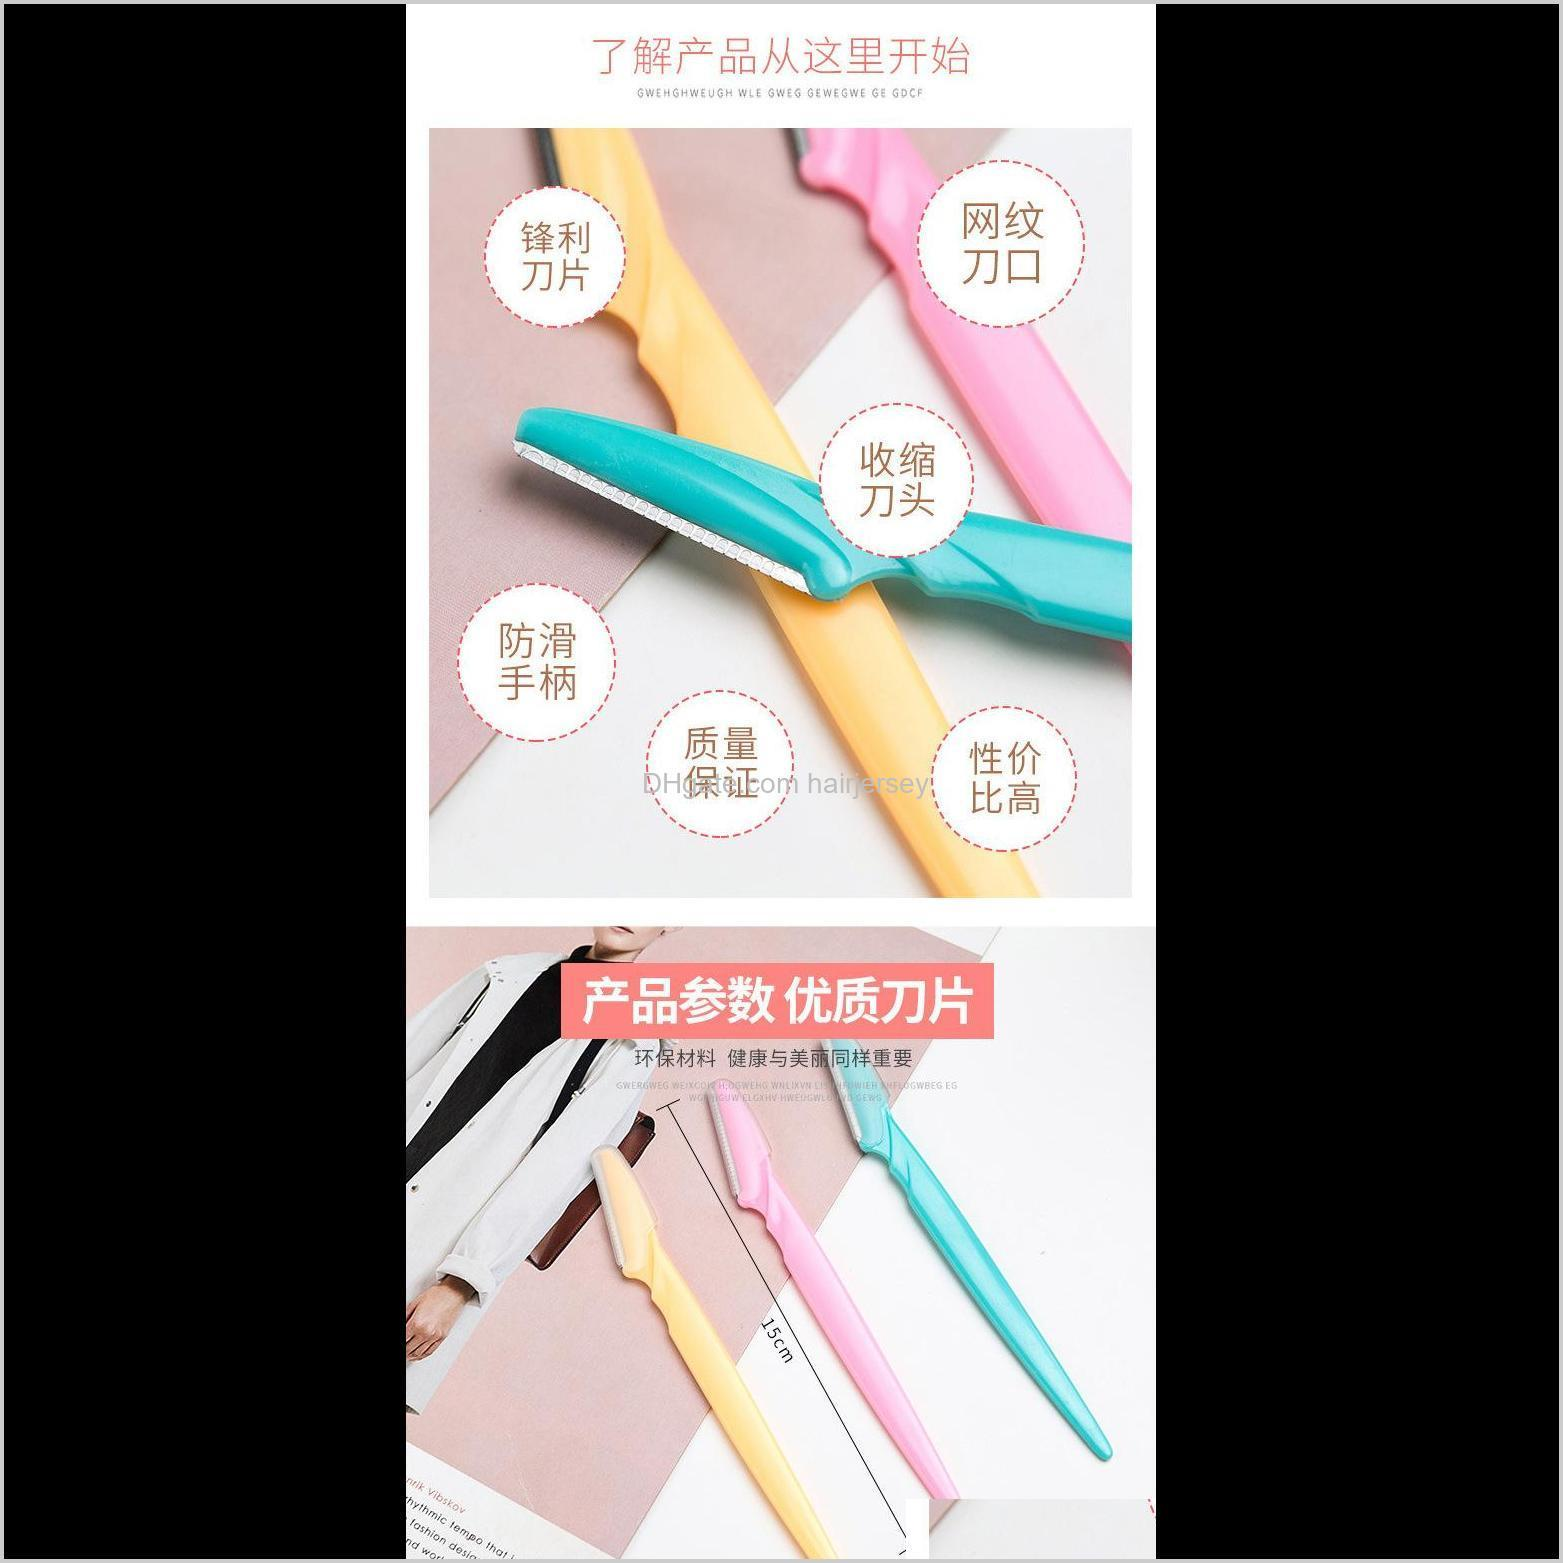 eyebrow razors precision sharpness for trimming and shaping eyebrows multipurpose exfoliating face razor and eyebrow shaper